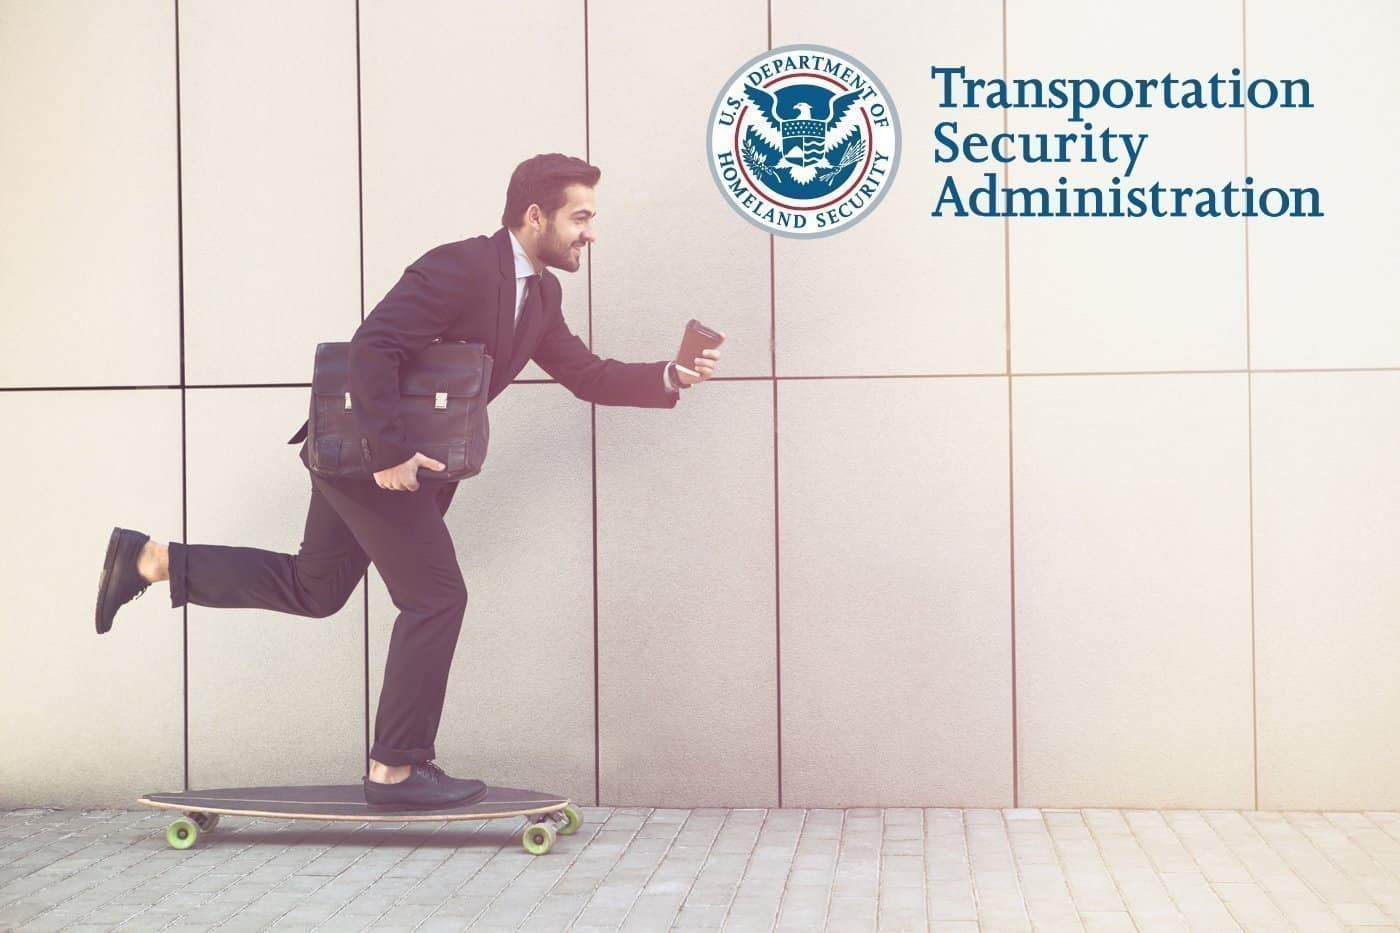 Business man riding a skate board holding a brief case and coffee. TSA logo in right corner.